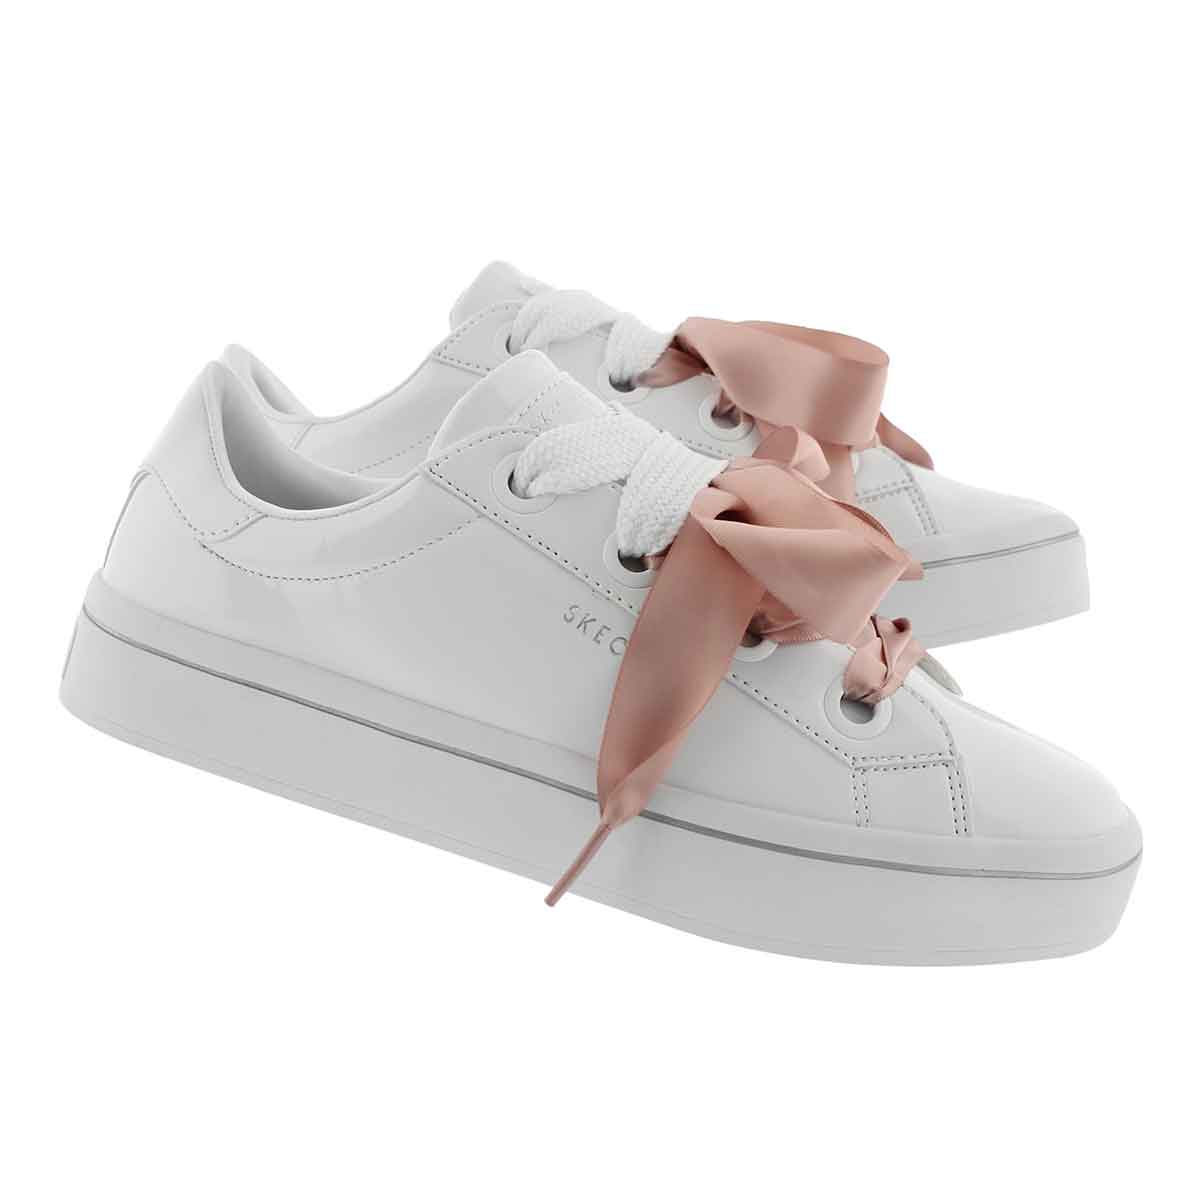 Lds Hi-Lite white lace up sneaker